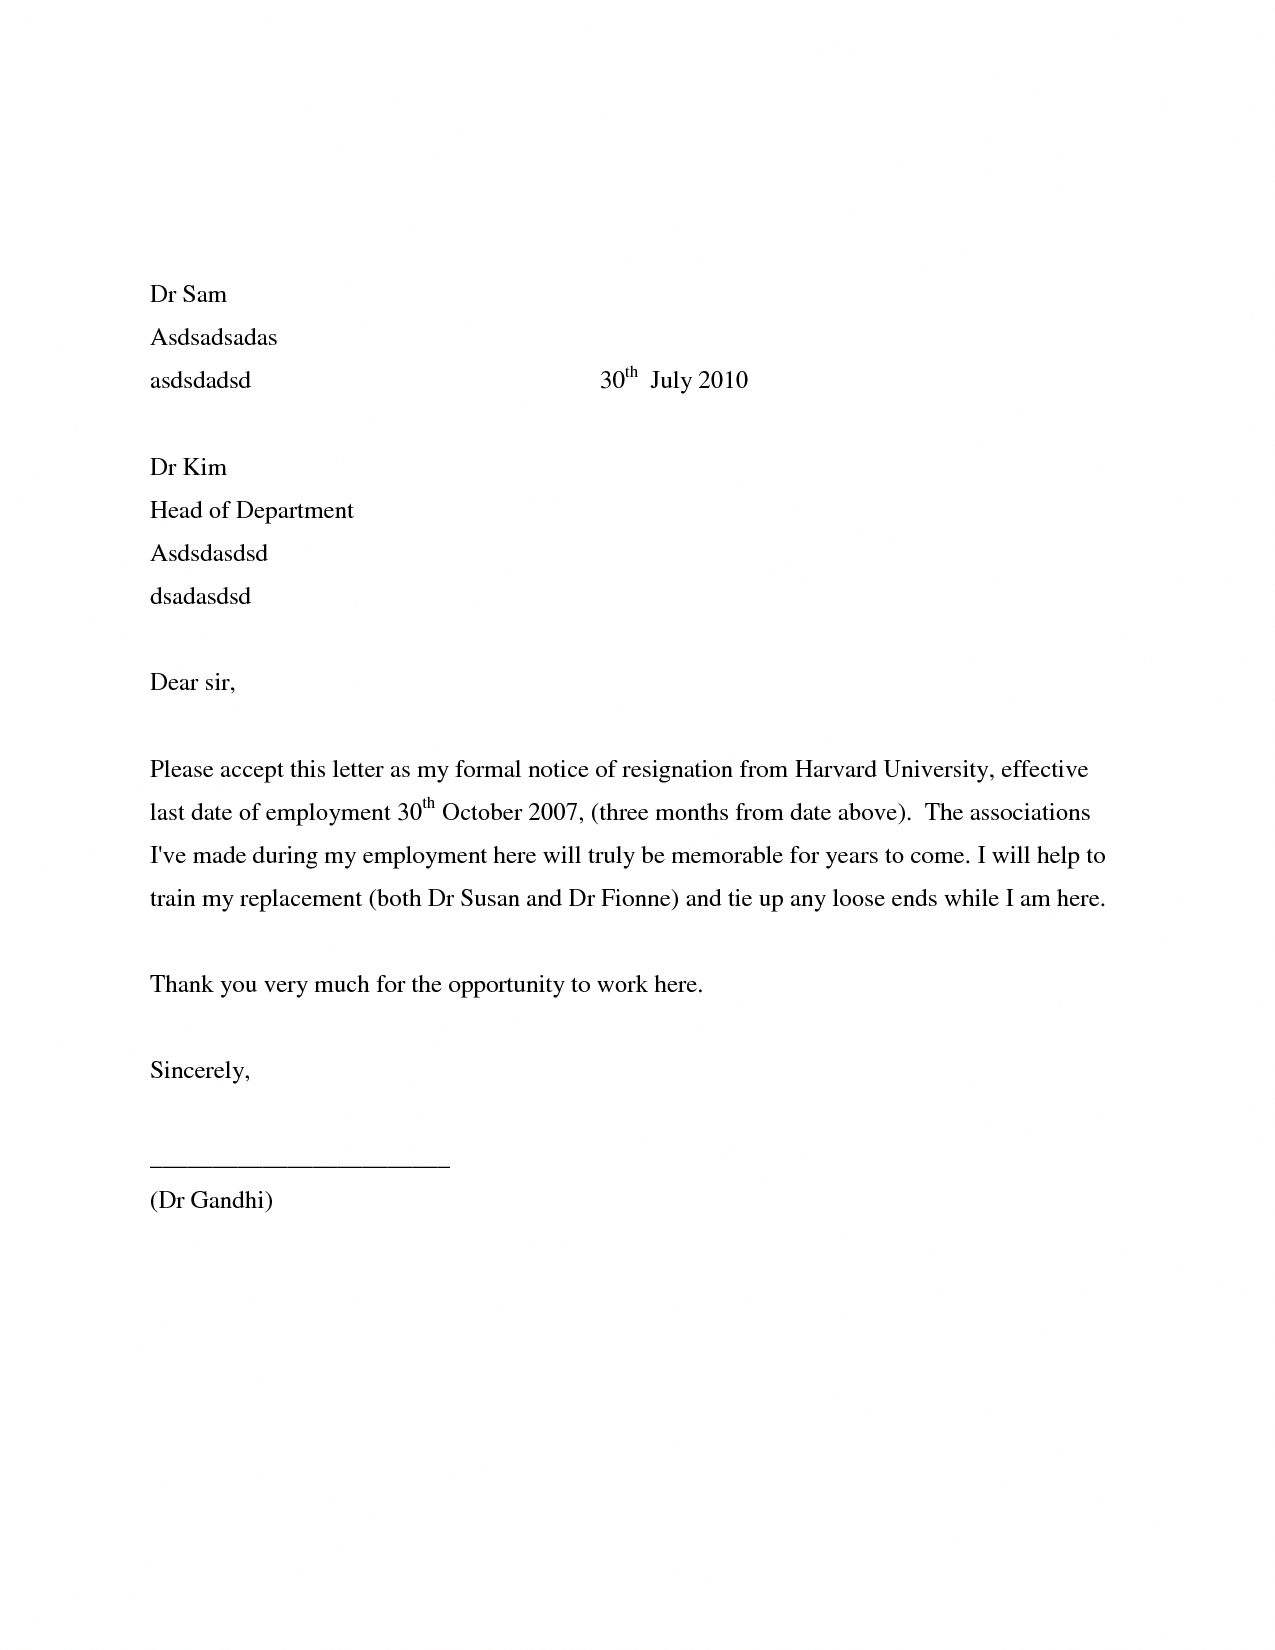 pin by linda patterson on lifehacks resignation letter resume for highschool students with no experience simple example of to apply job police officer